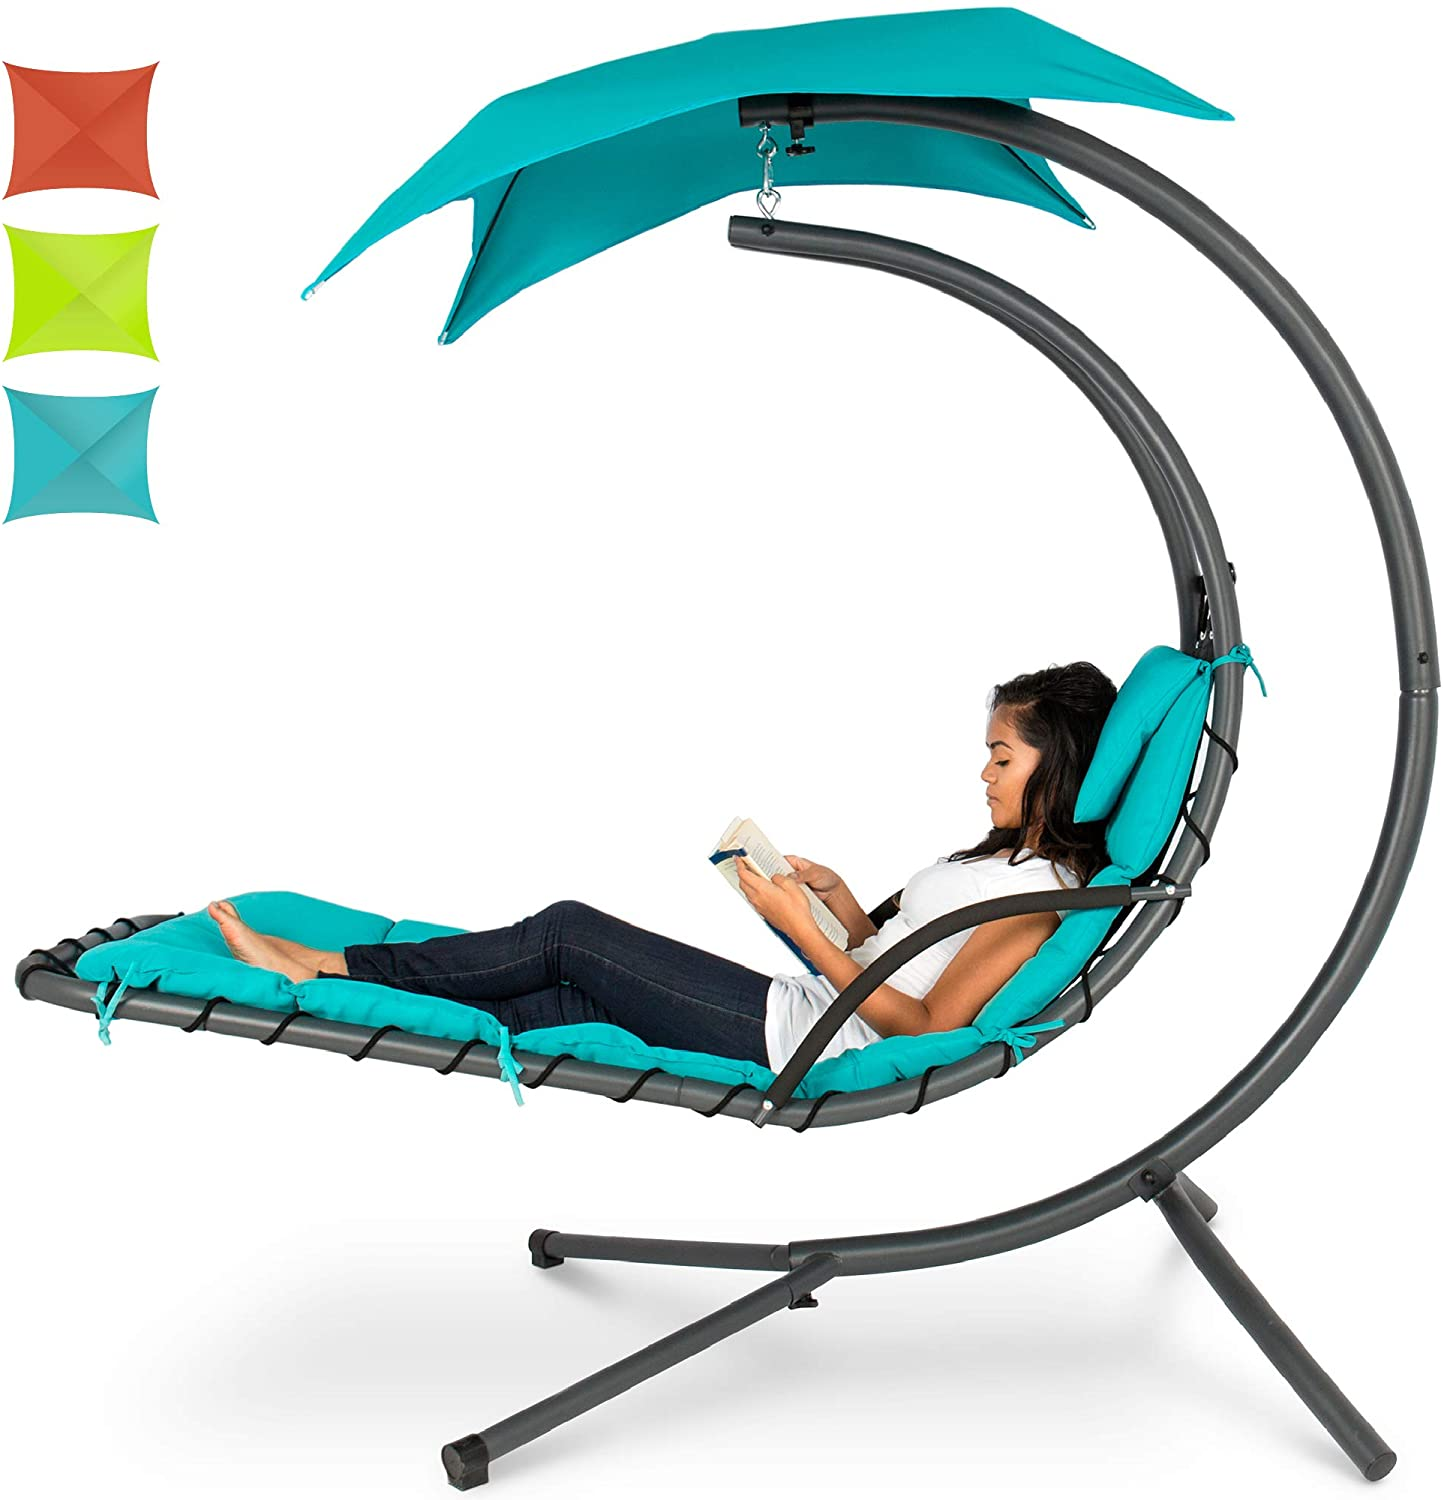 Top 10 hanging chairs for houses and gardens 2020 11